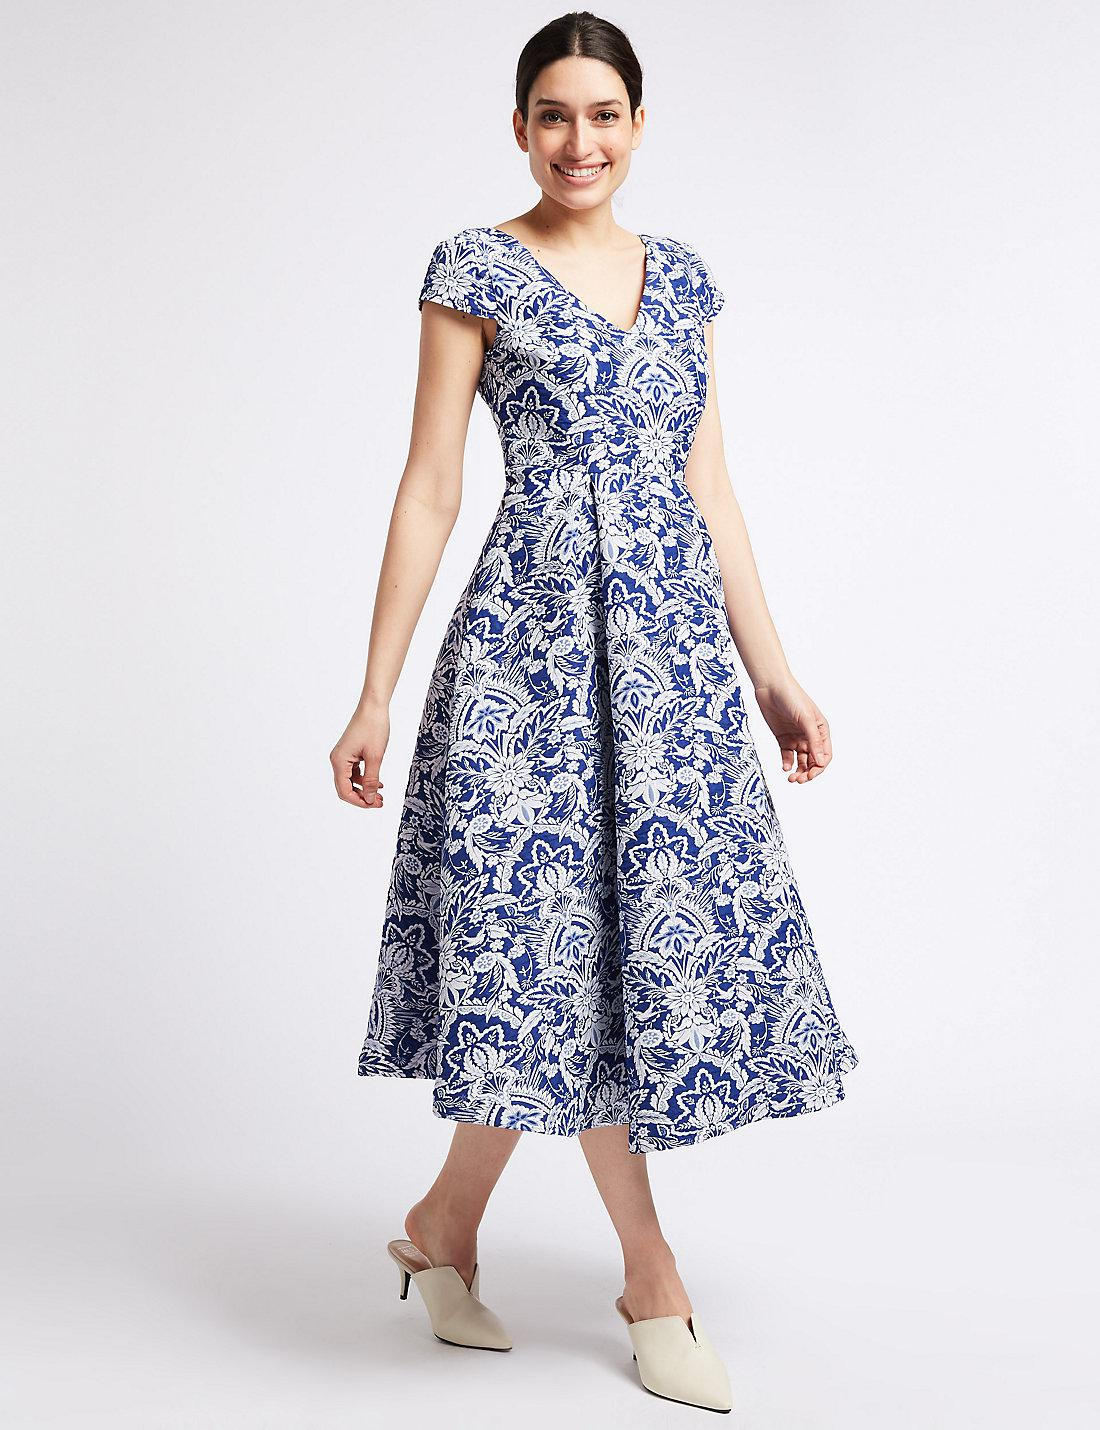 ce161fbe3f6c2 Blue And White Floral Prom Dresses - PostParc